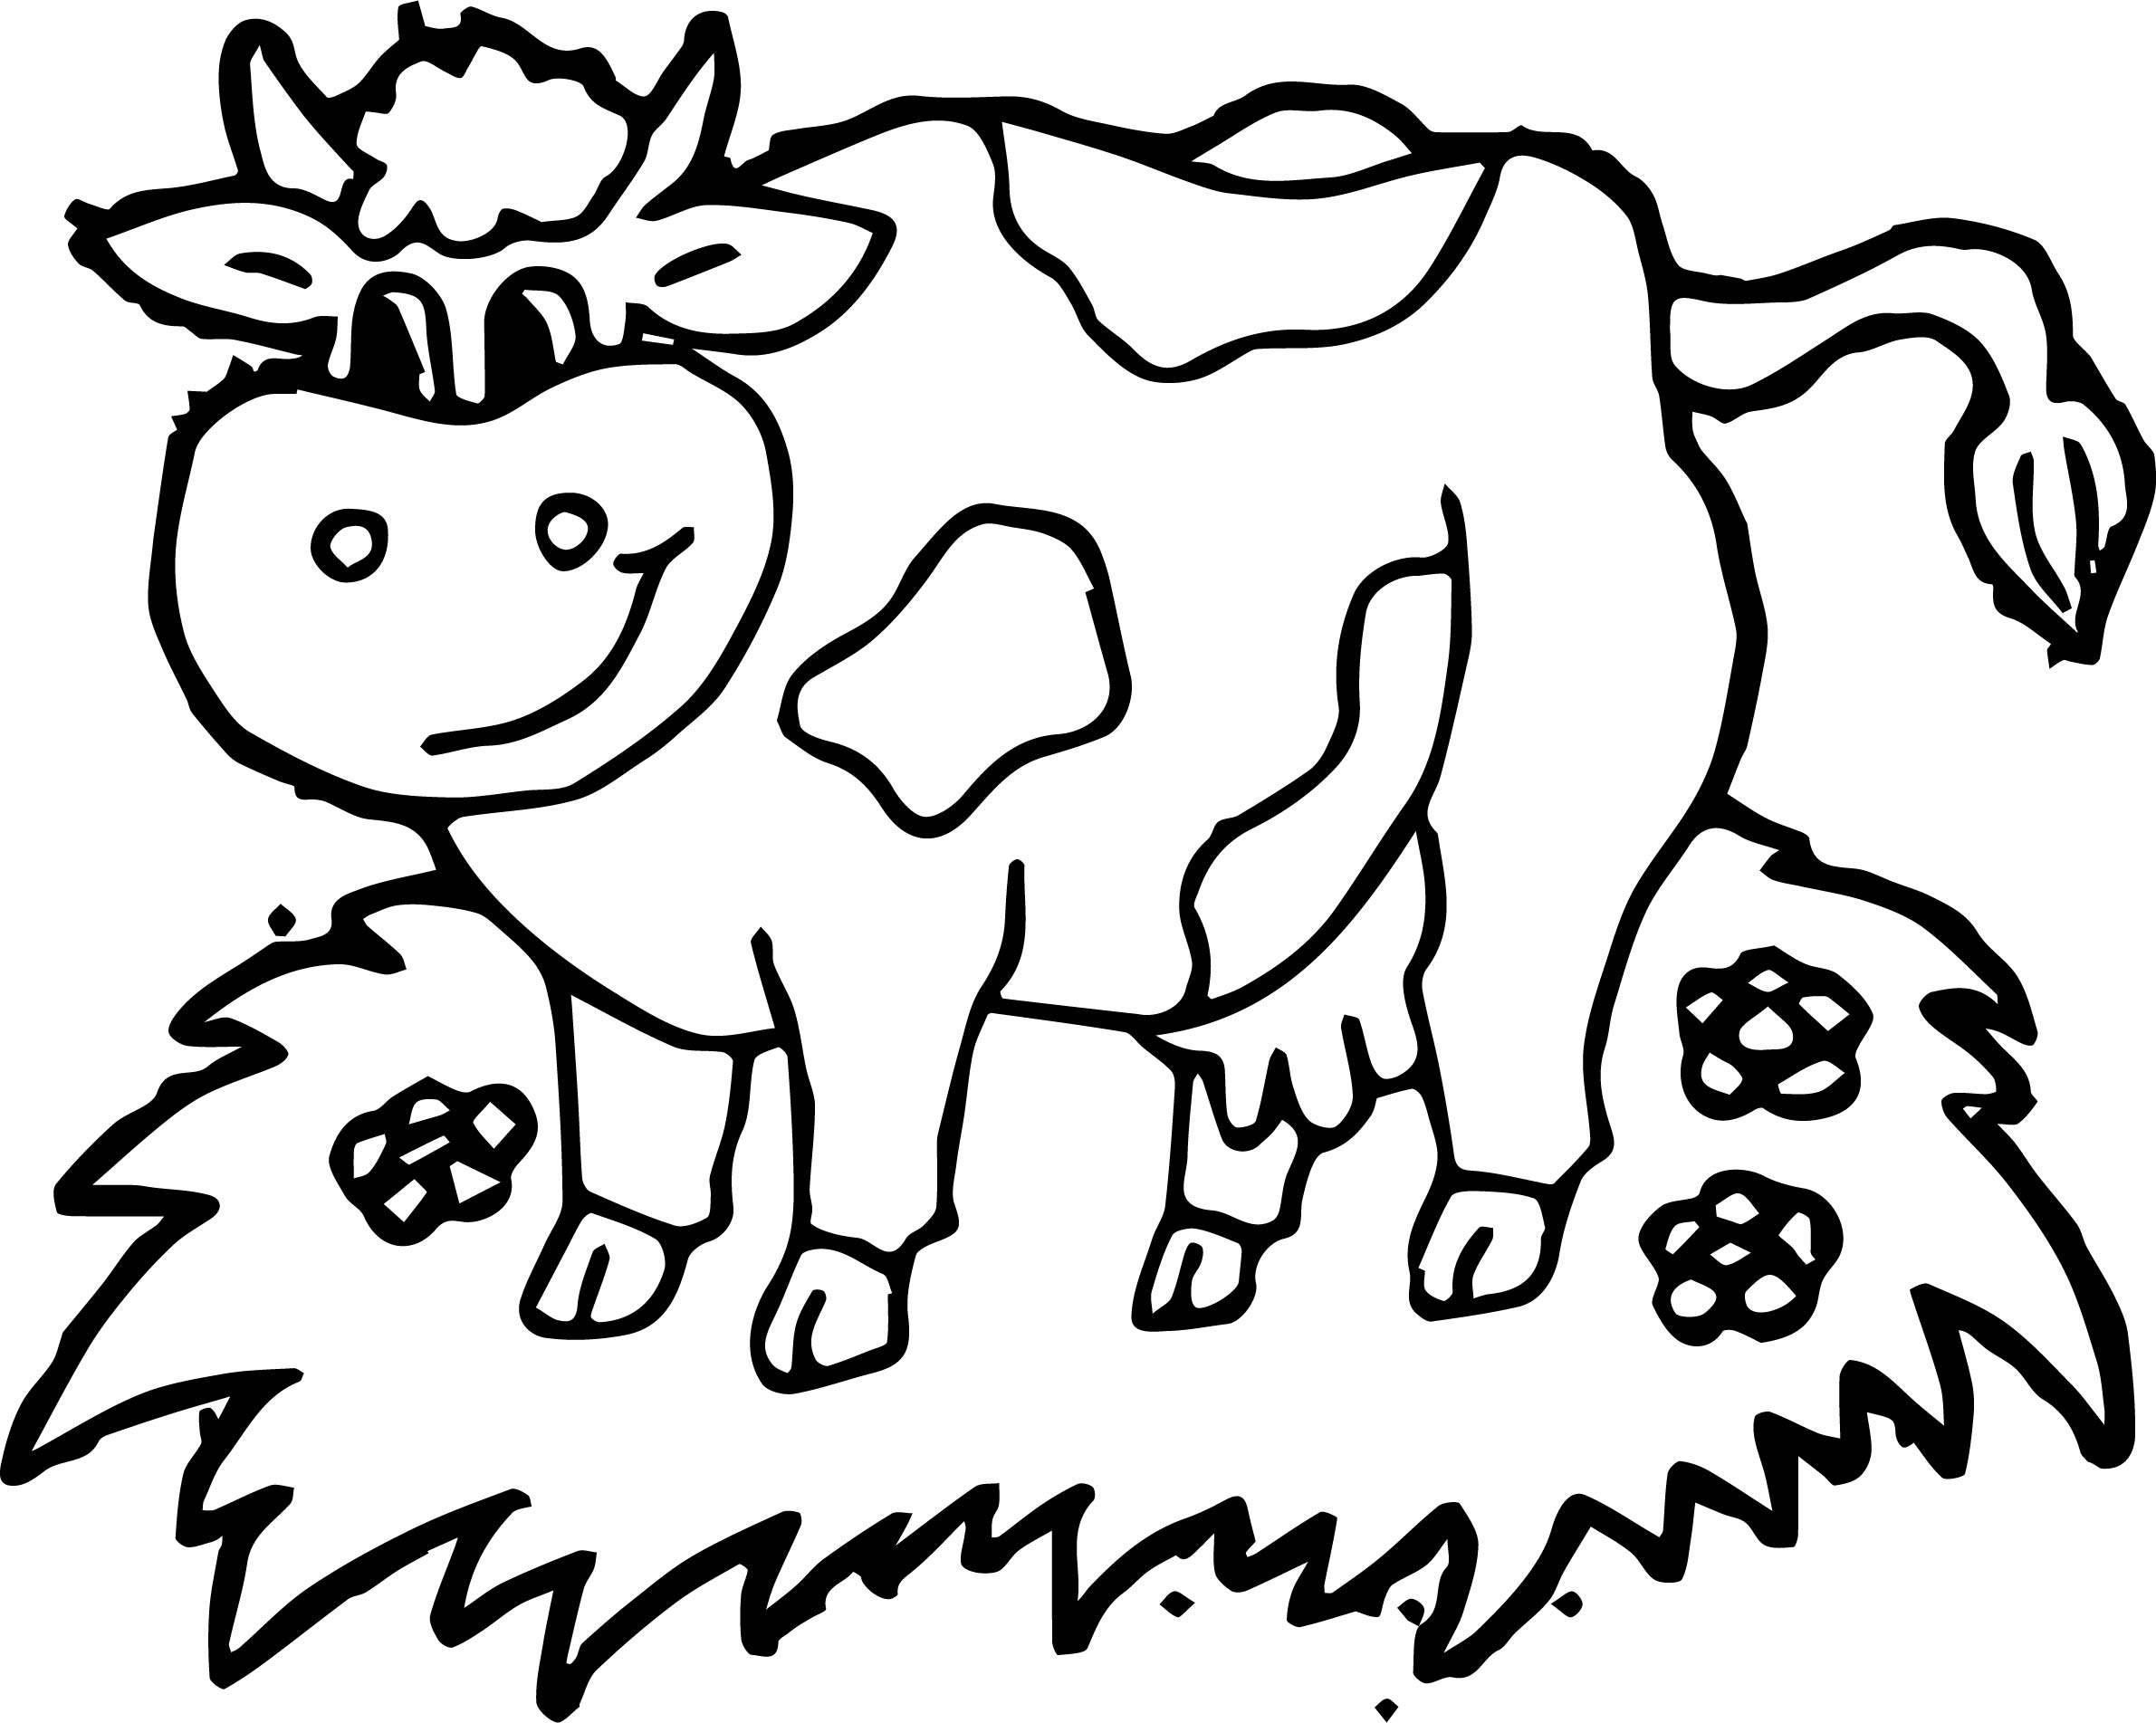 Cow Head Coloring Page At Getcolorings